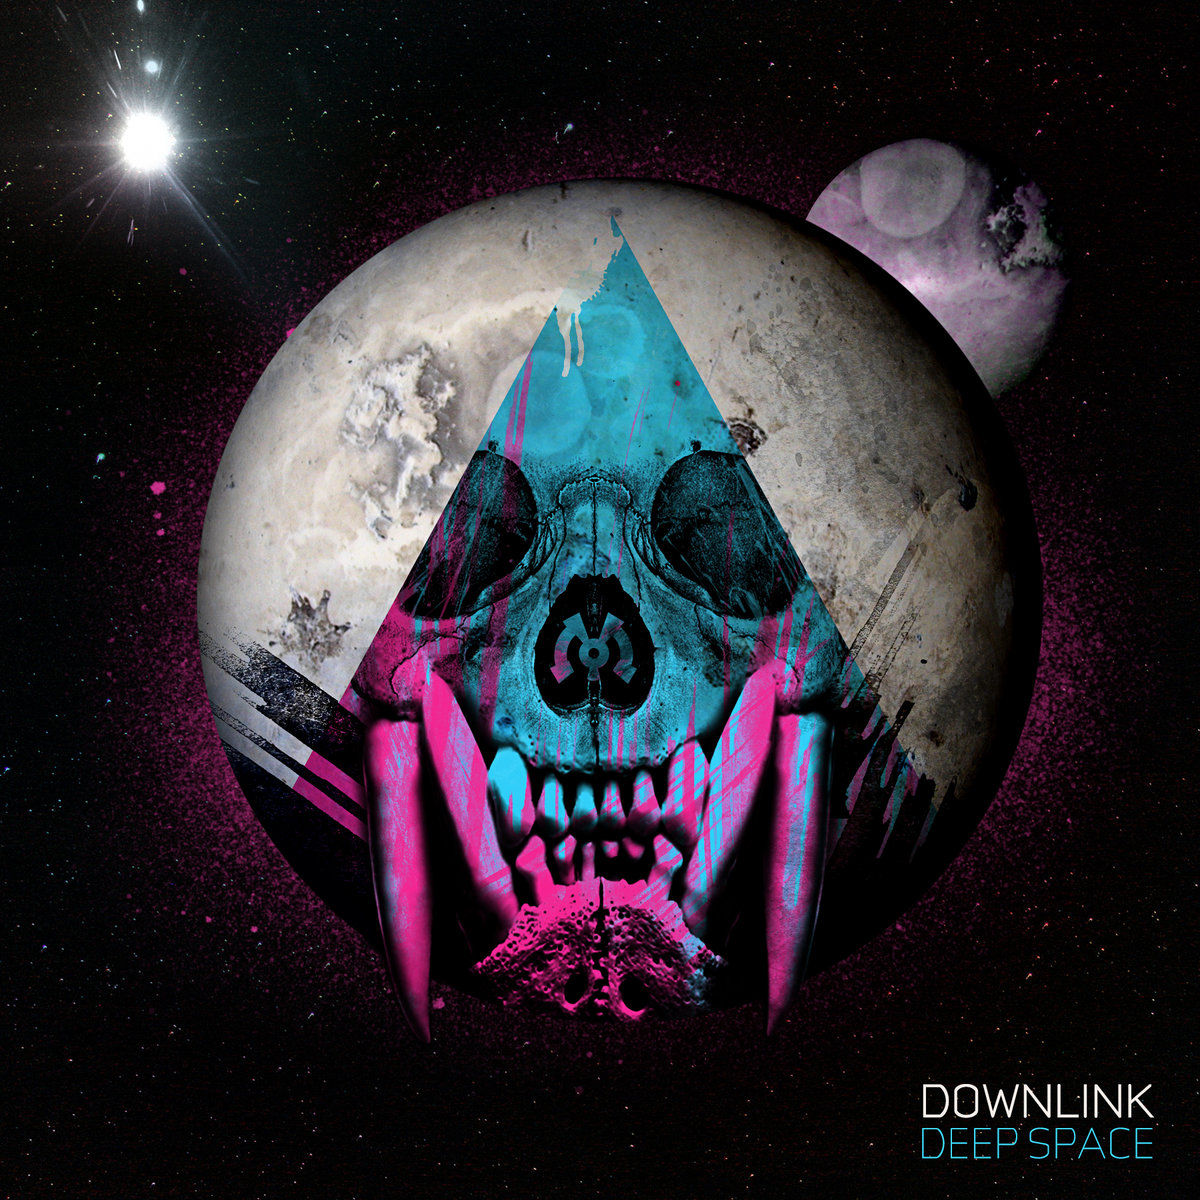 Downlink - Deep Space (SPL Remix) @ 'Deep Space' album (electronic, dubstep)